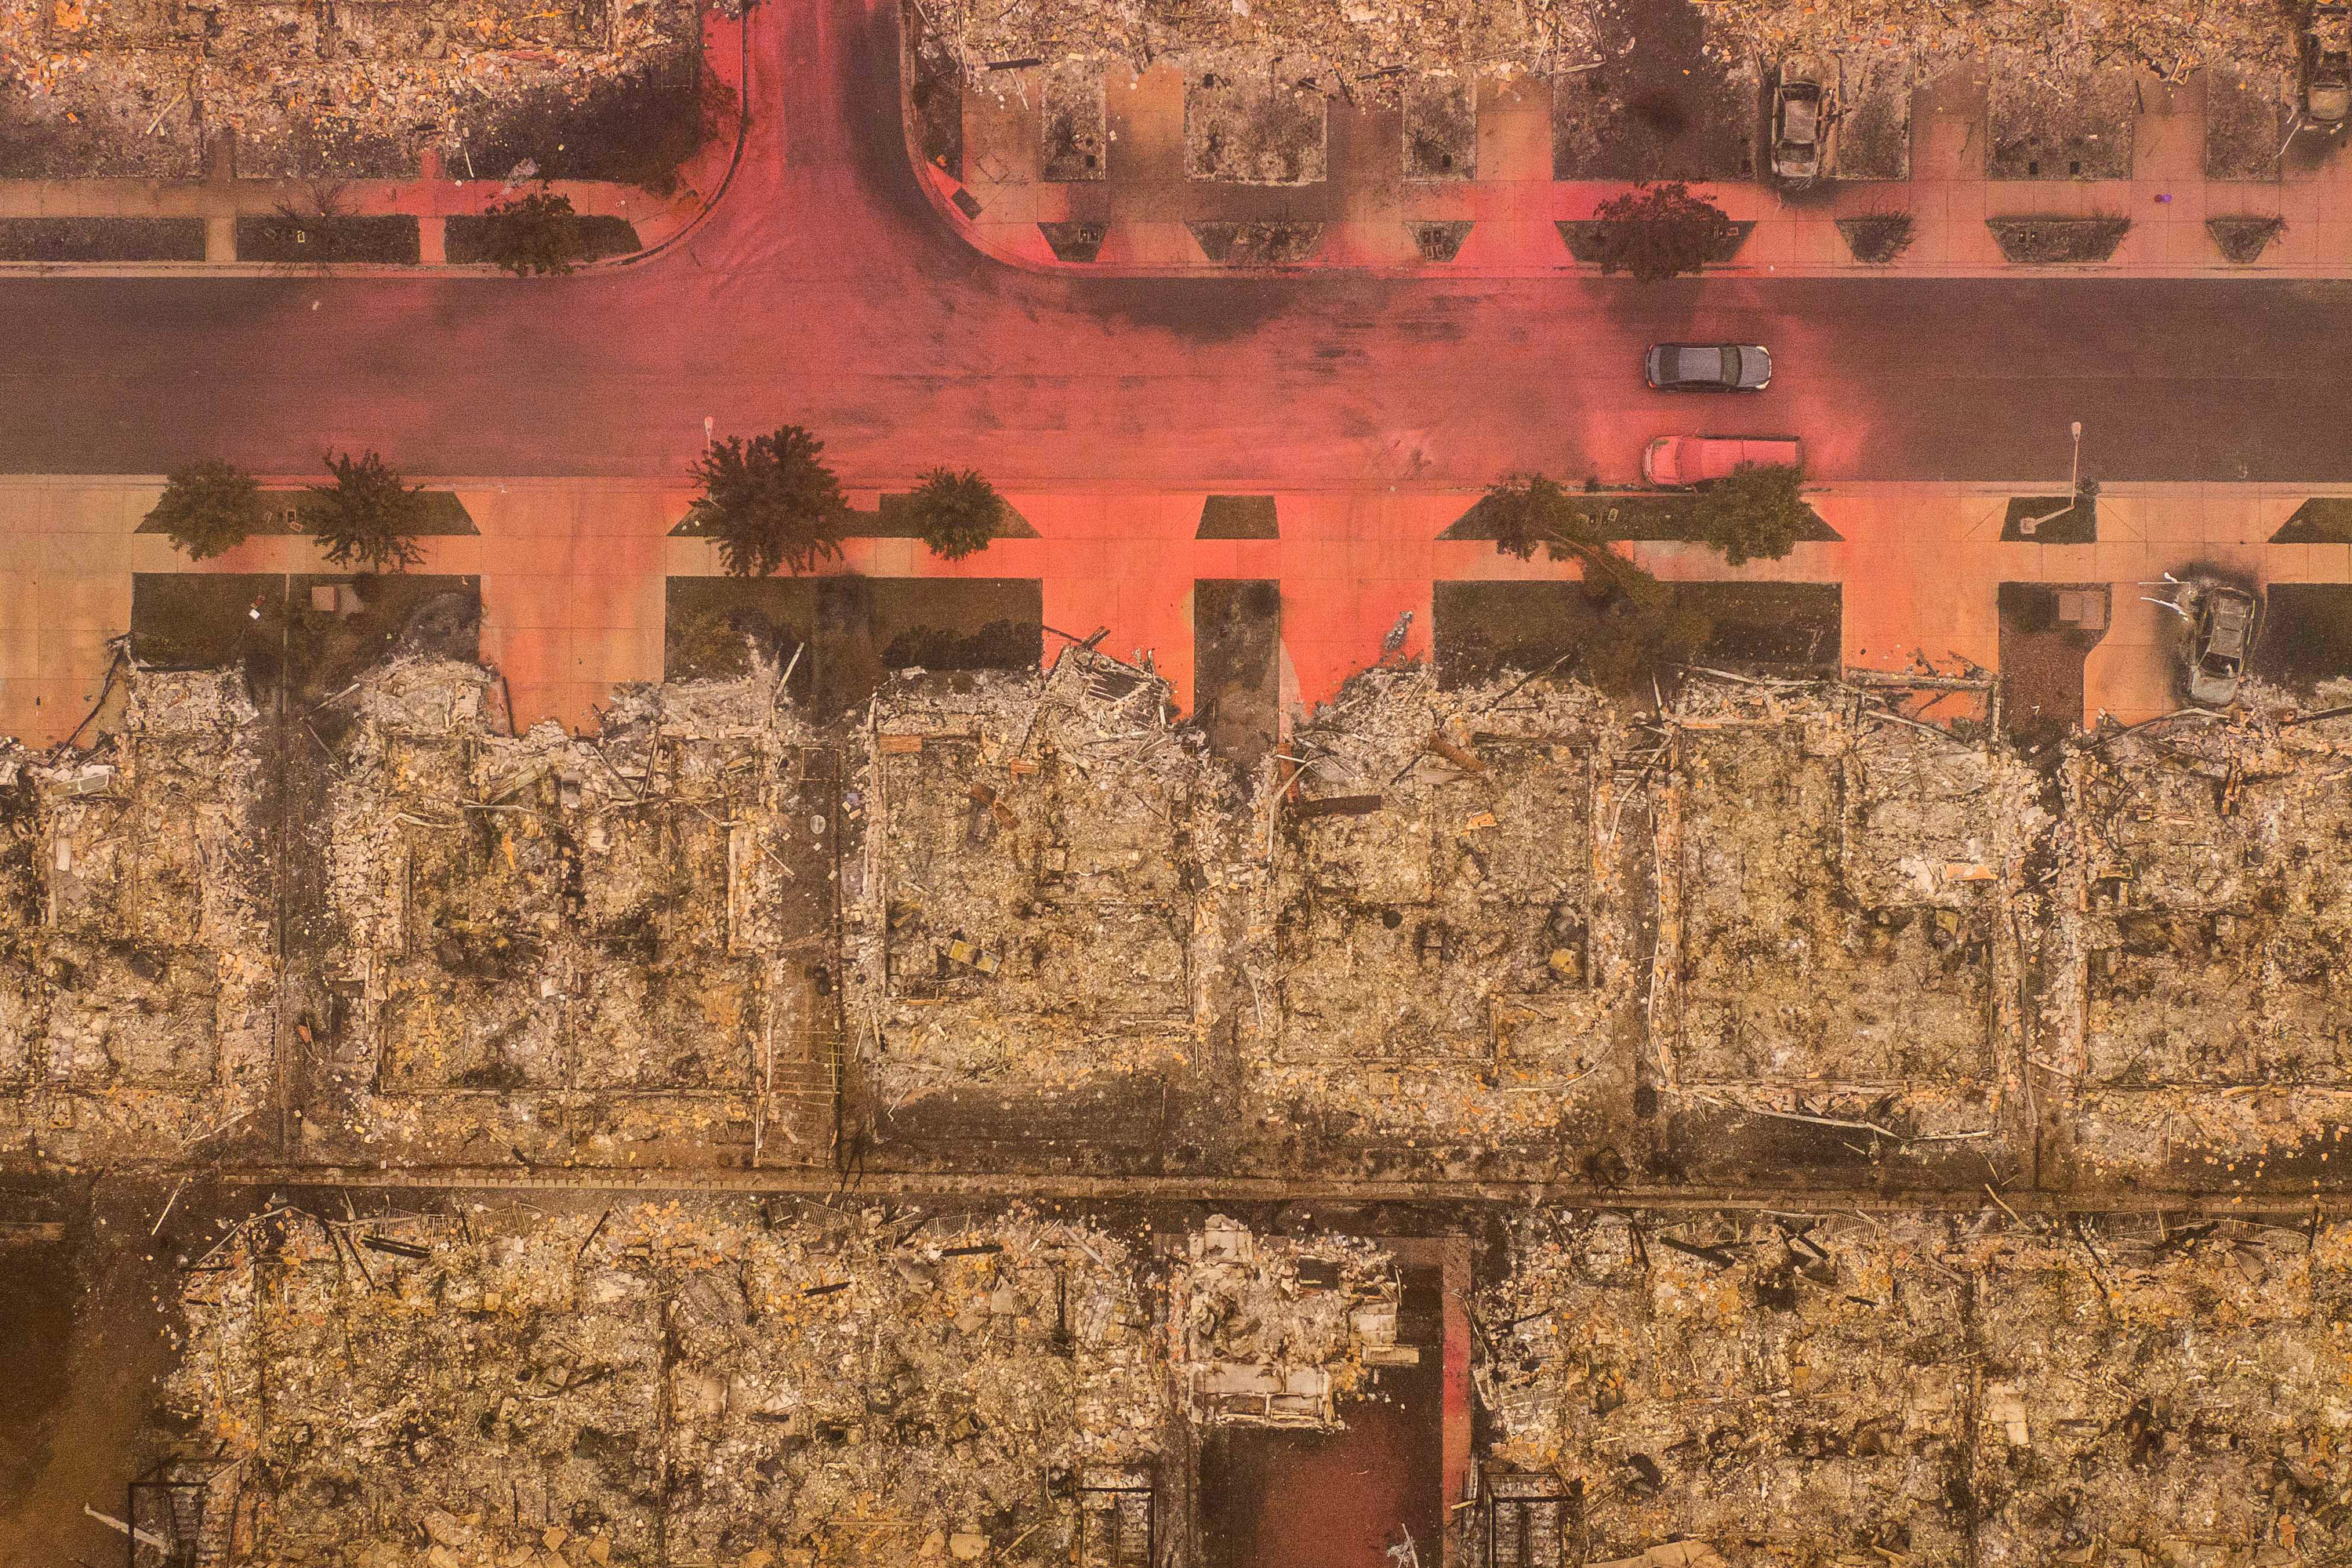 wildfire aftermath aerial